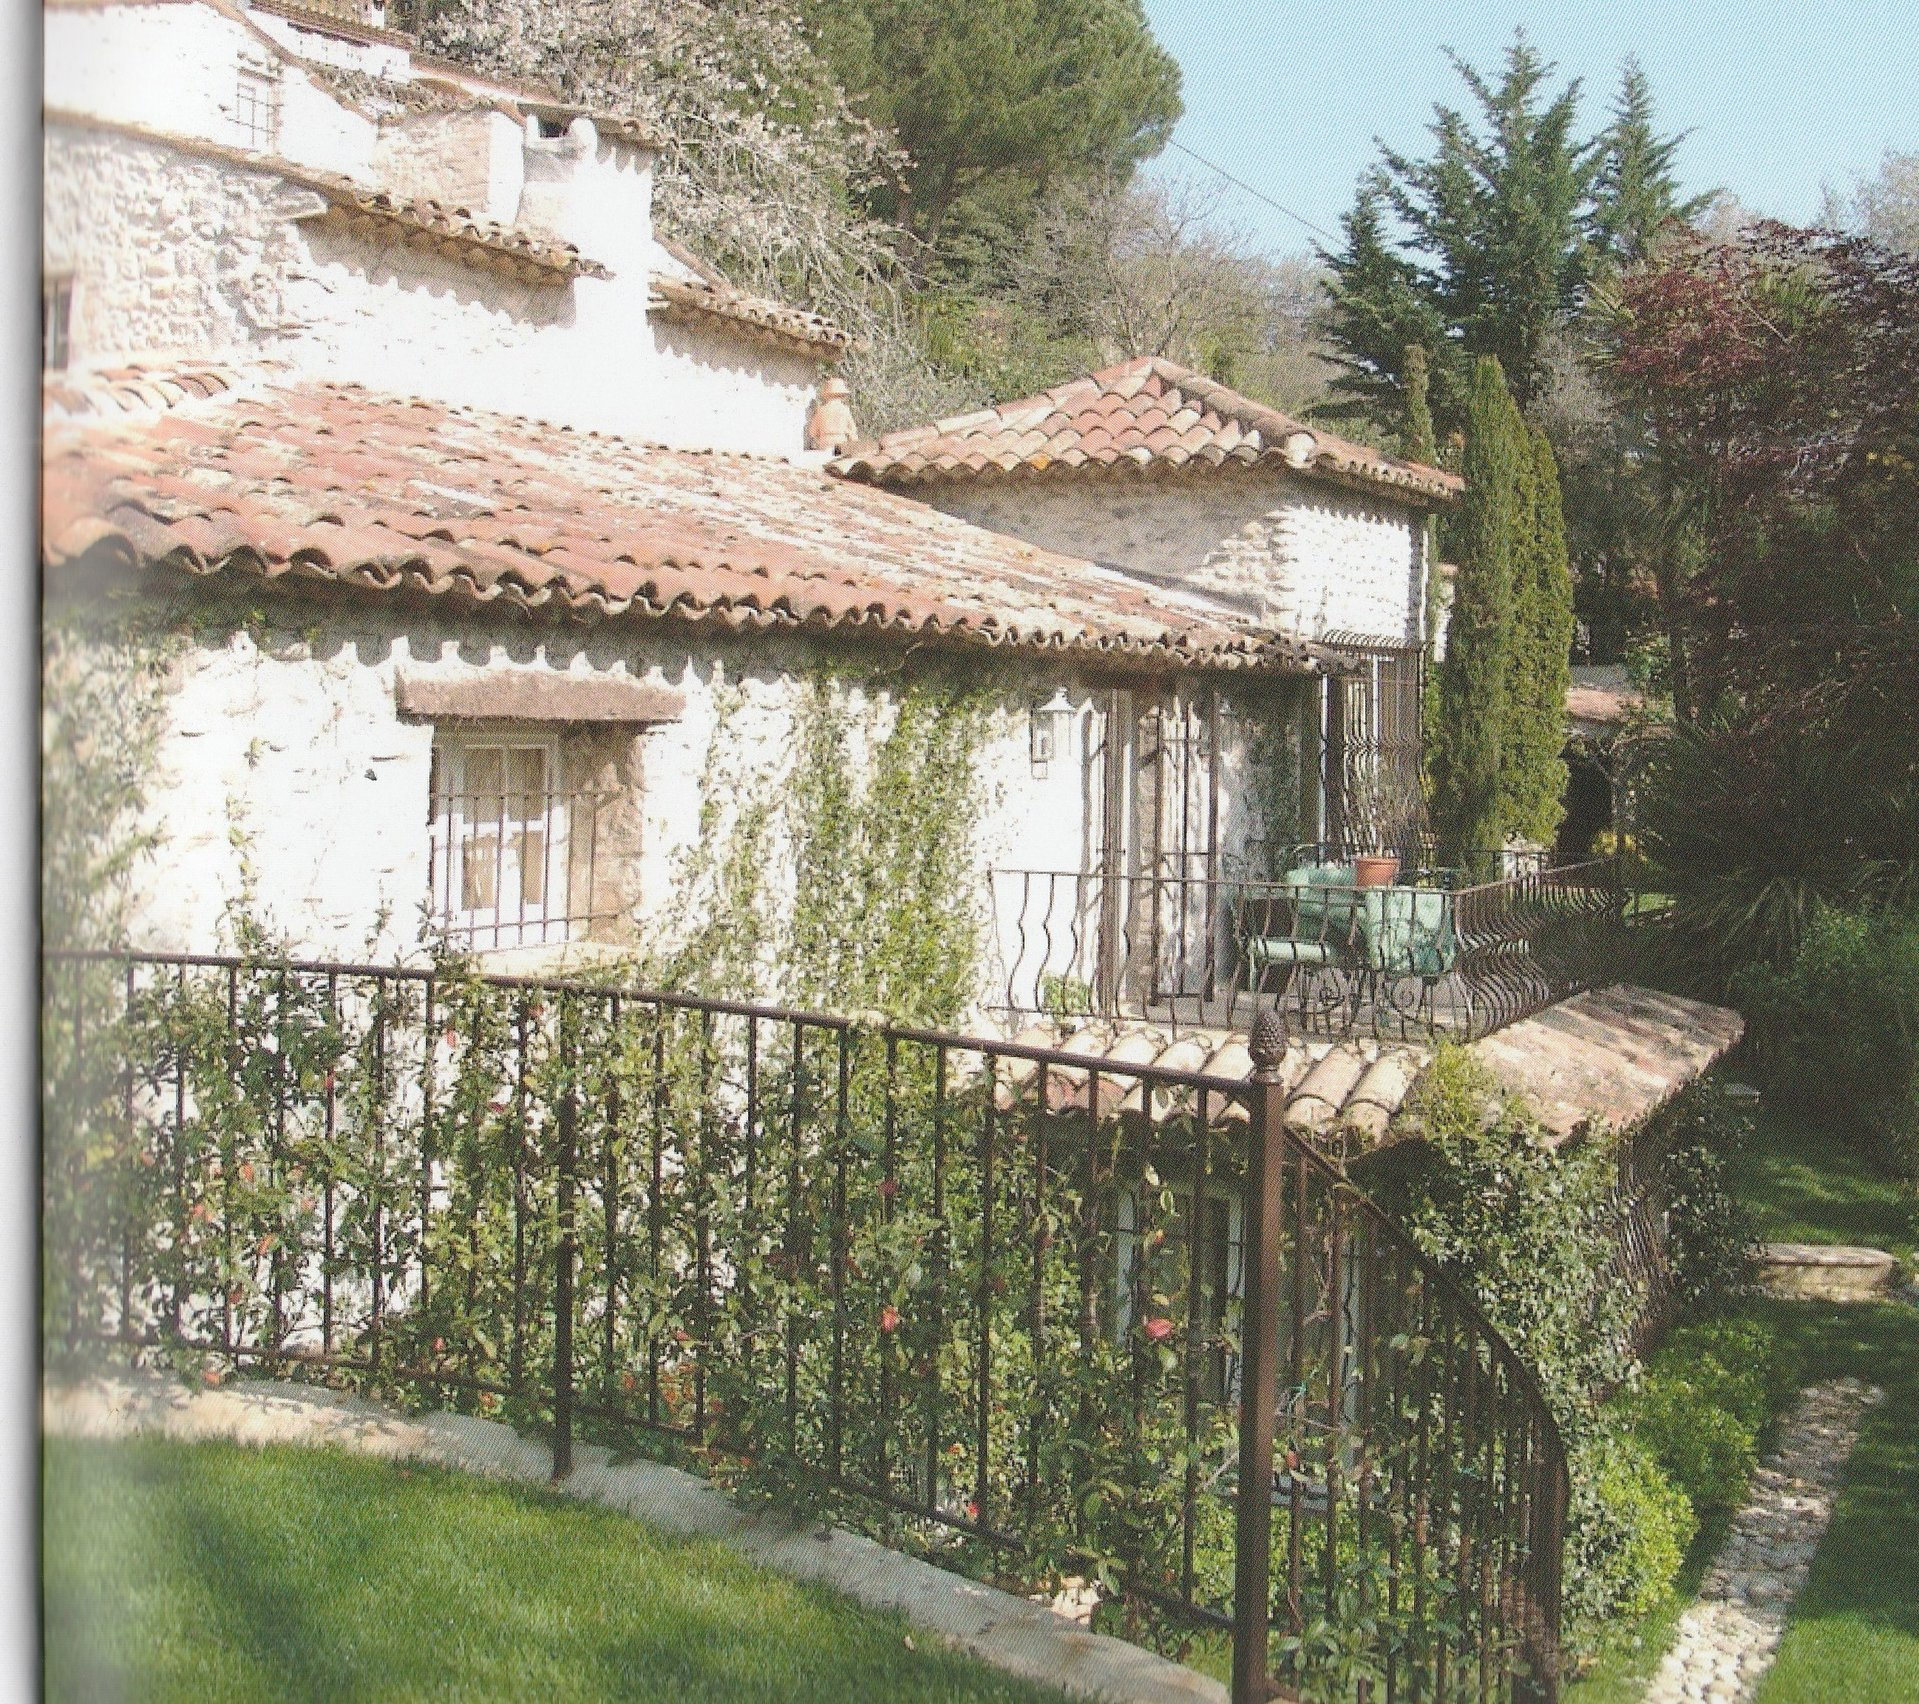 Saint-Paul de Vence, 18th century farmhouse